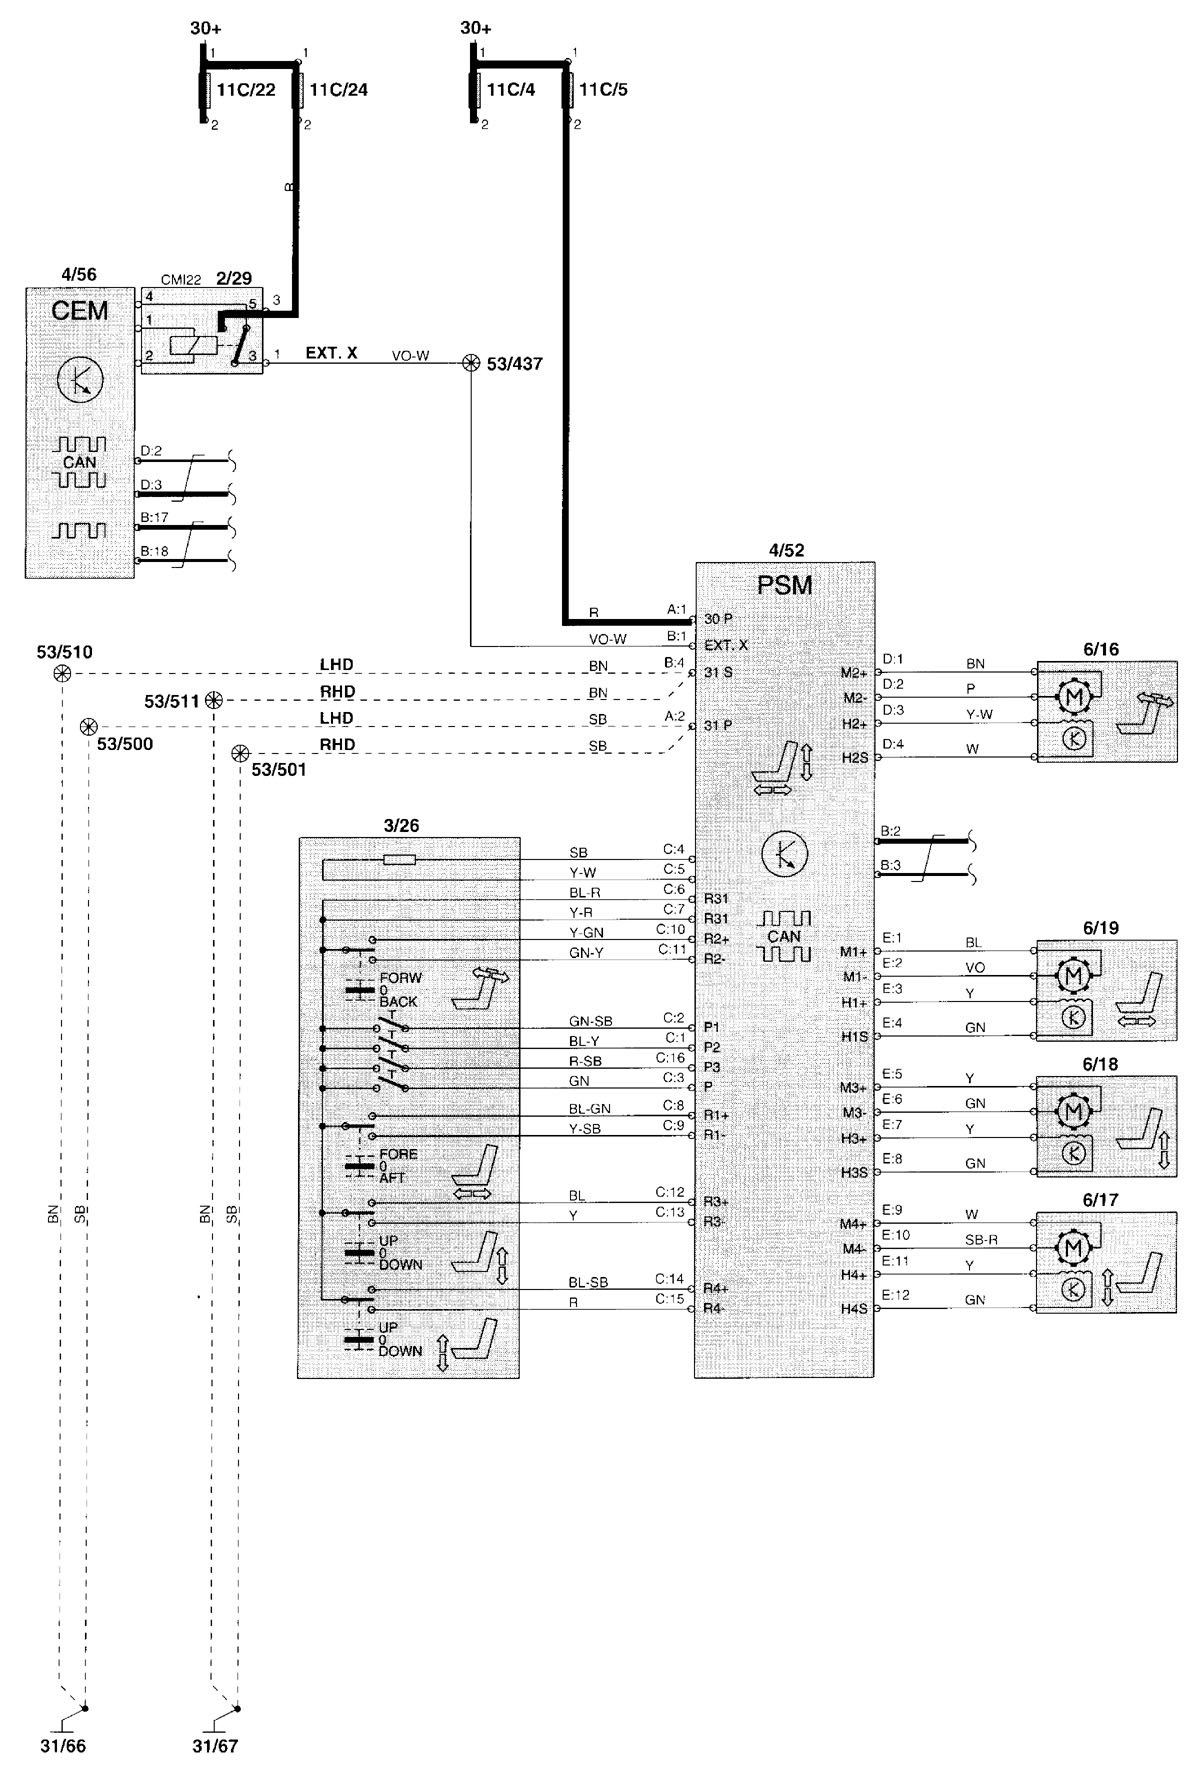 diagram] 2004 volvo xc70 wiring diagram full version hd quality wiring  diagram - diagramwood.gdtoscana.it  diagram database - gdtoscana.it